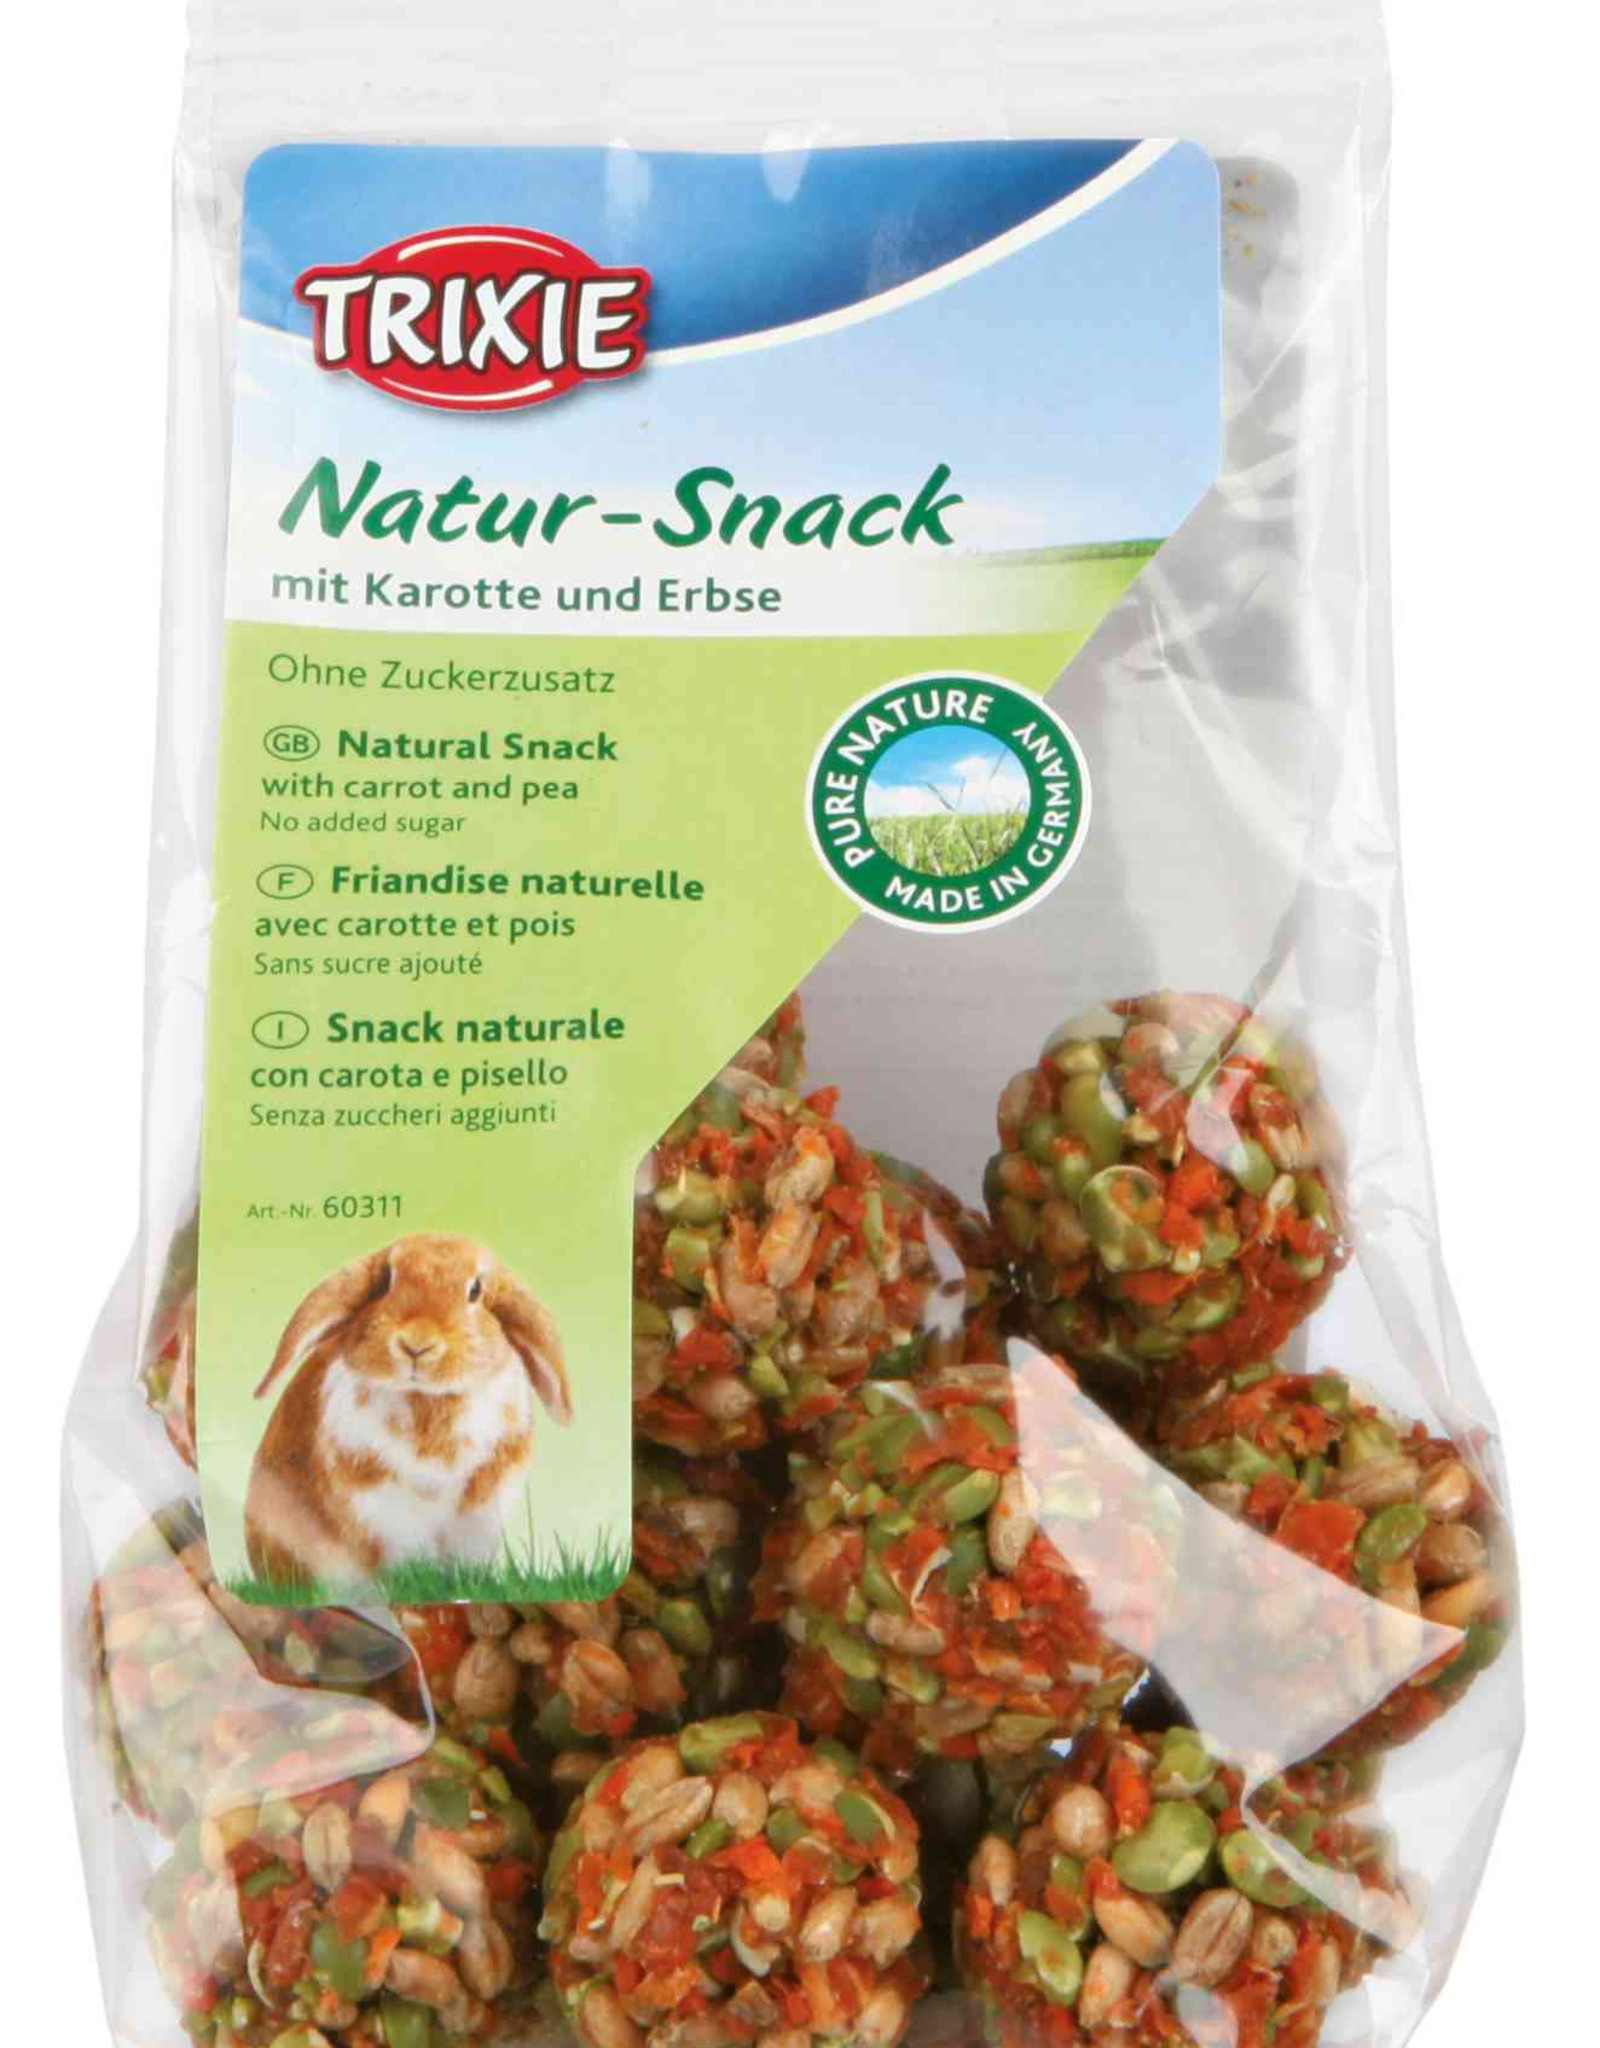 Trixie Natur-Snack Small Animal Ball Shape Treats with Carrot and Pea 140g